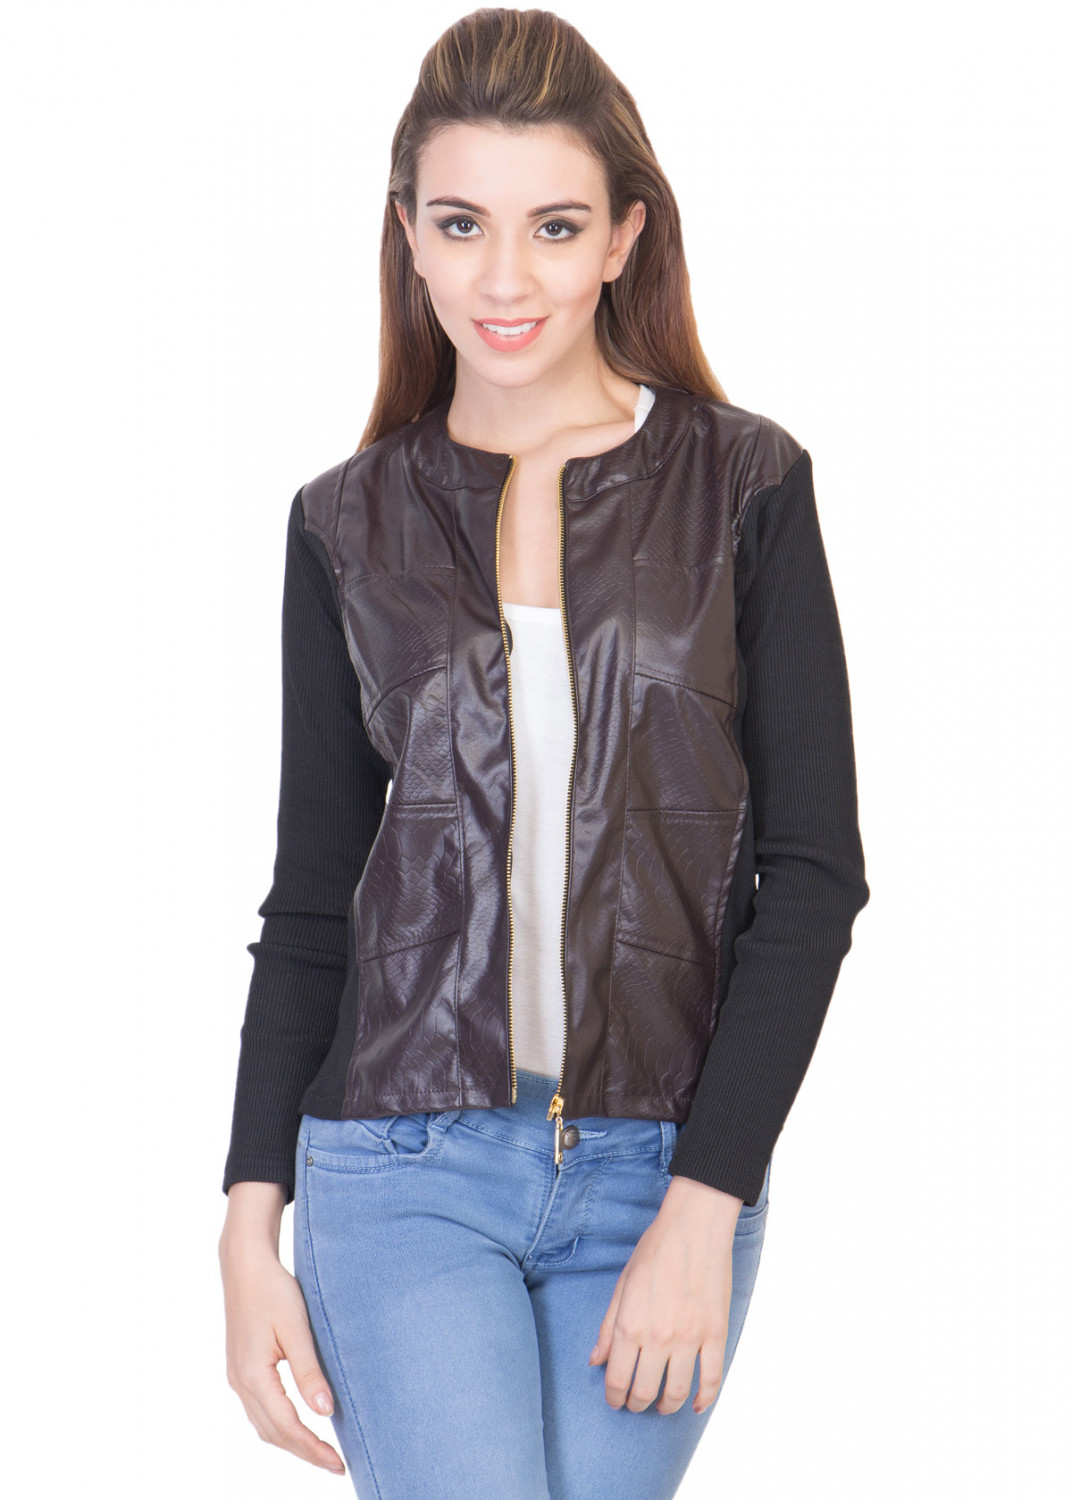 ants3 Ants Leather Front Jacket